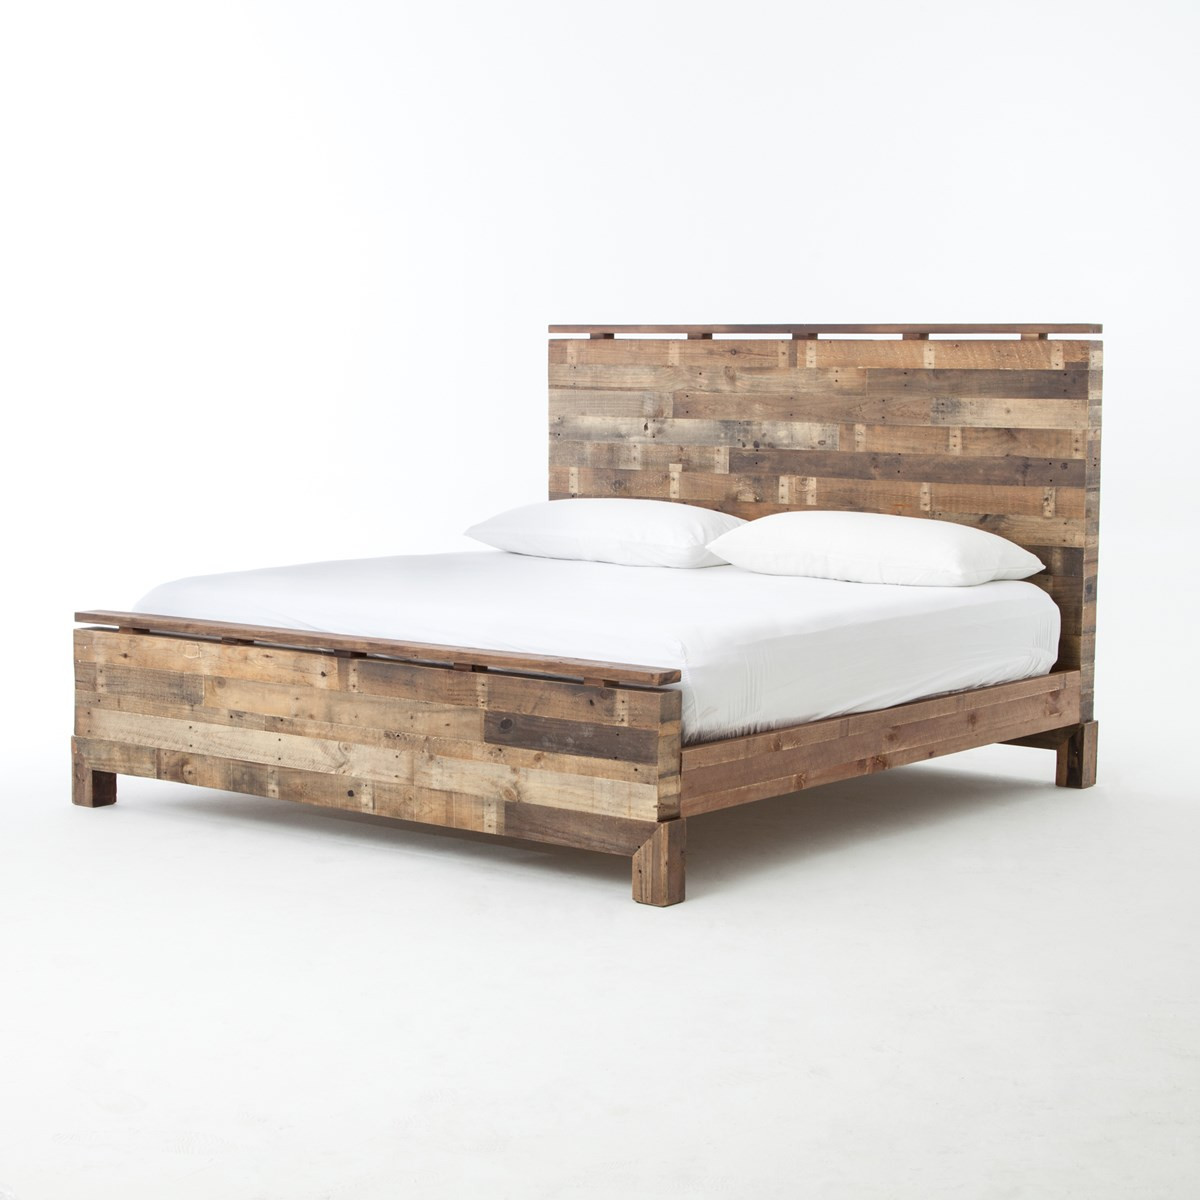 Angora rustic reclaimed wood king size platform bed zin home for Bedroom set and mattress